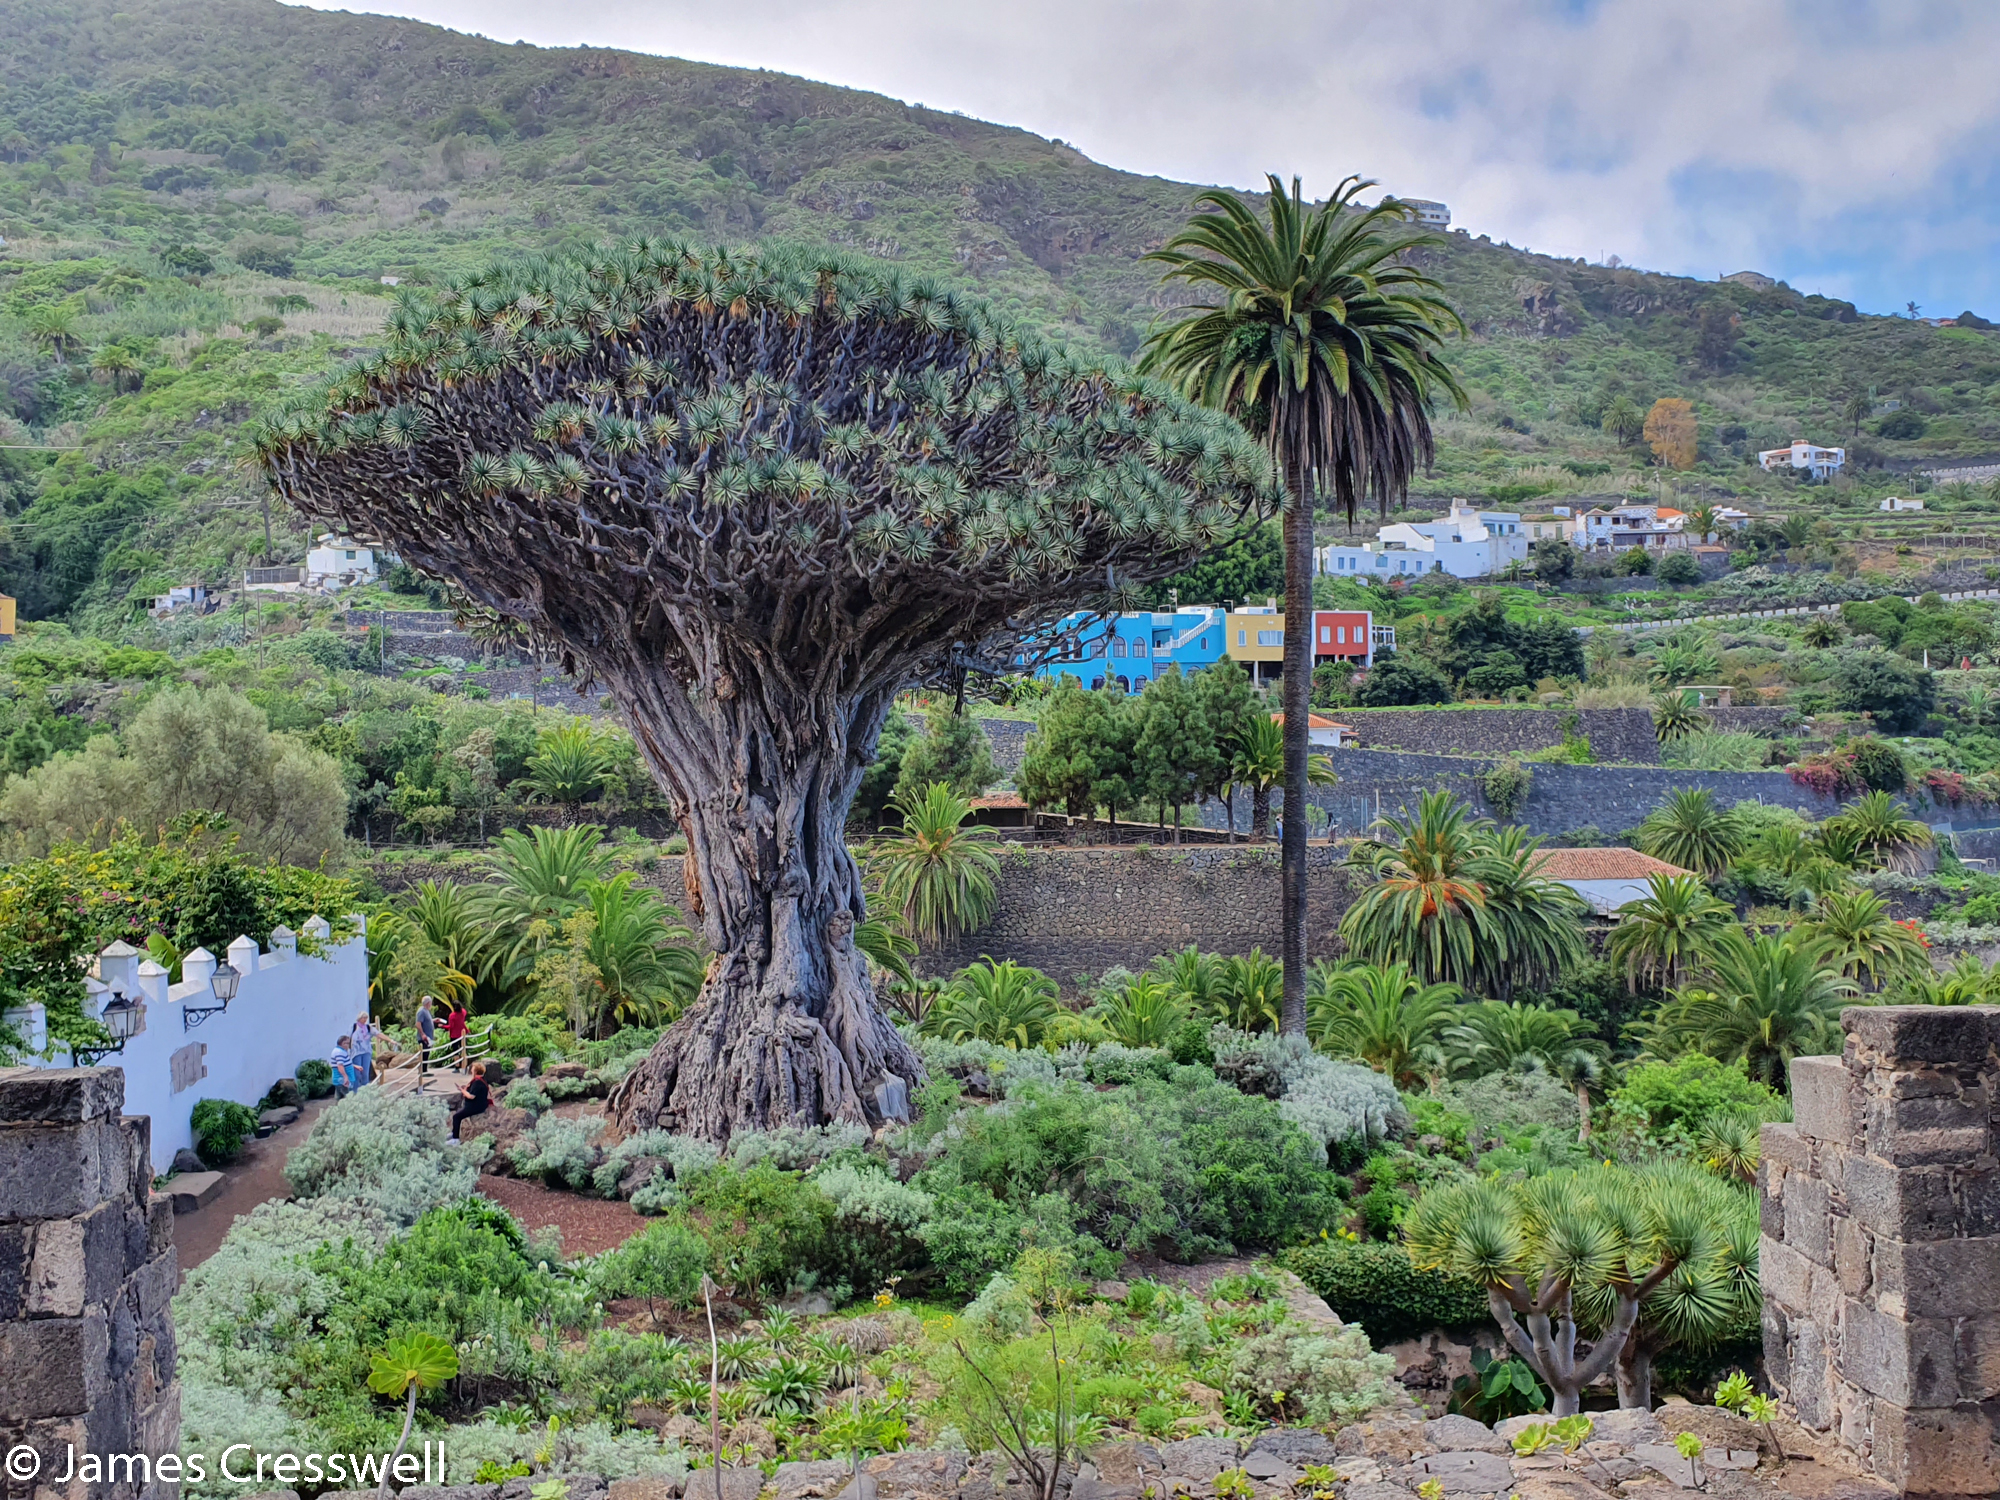 Dragon tree in park